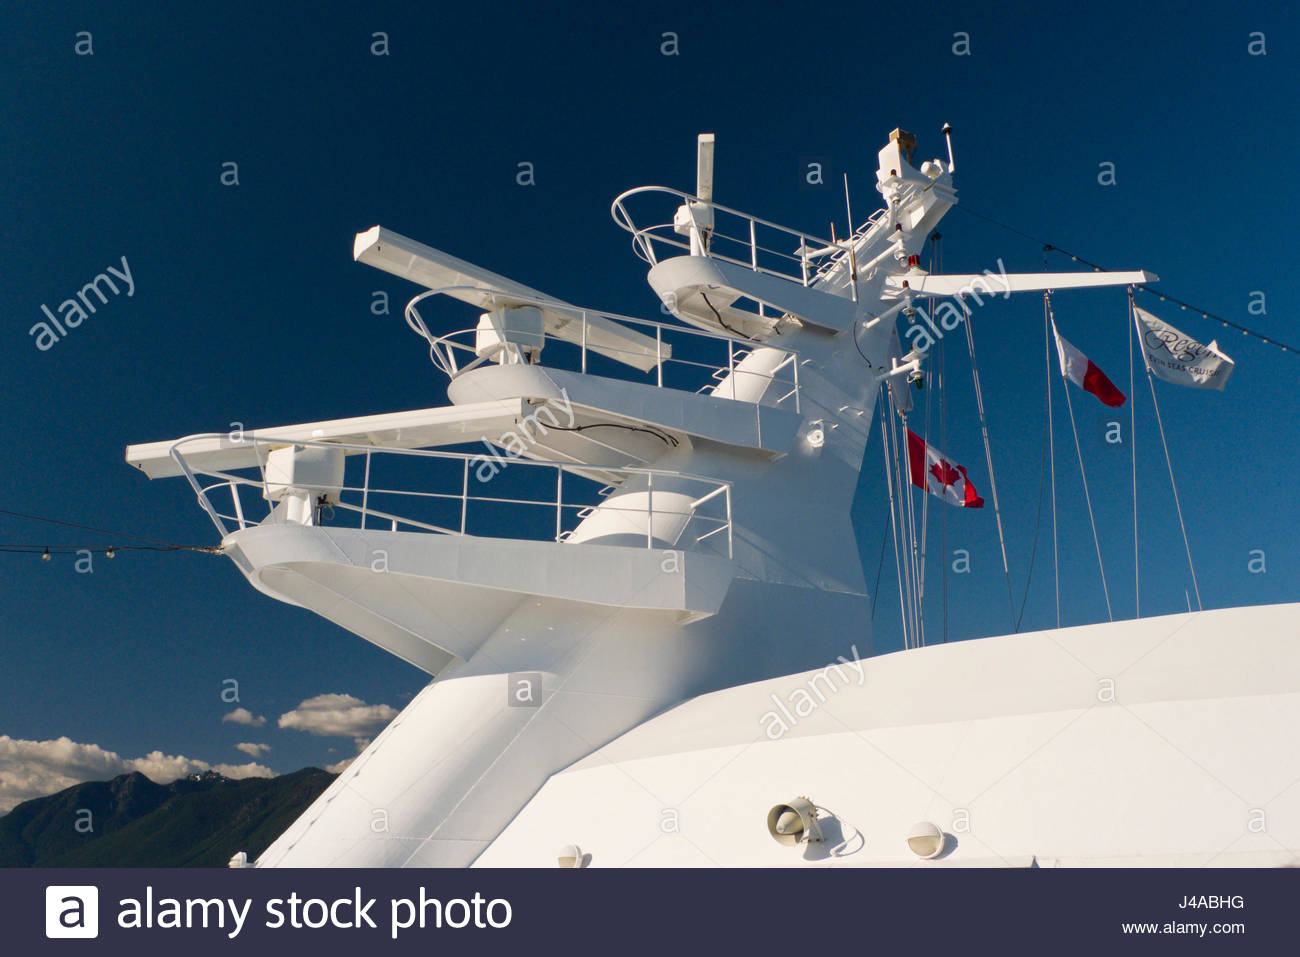 Radar on mast of the Regency Seven Seas Navigator cruise ship, Canada Place, Vancouver, British Colombia, Canada - Stock Image